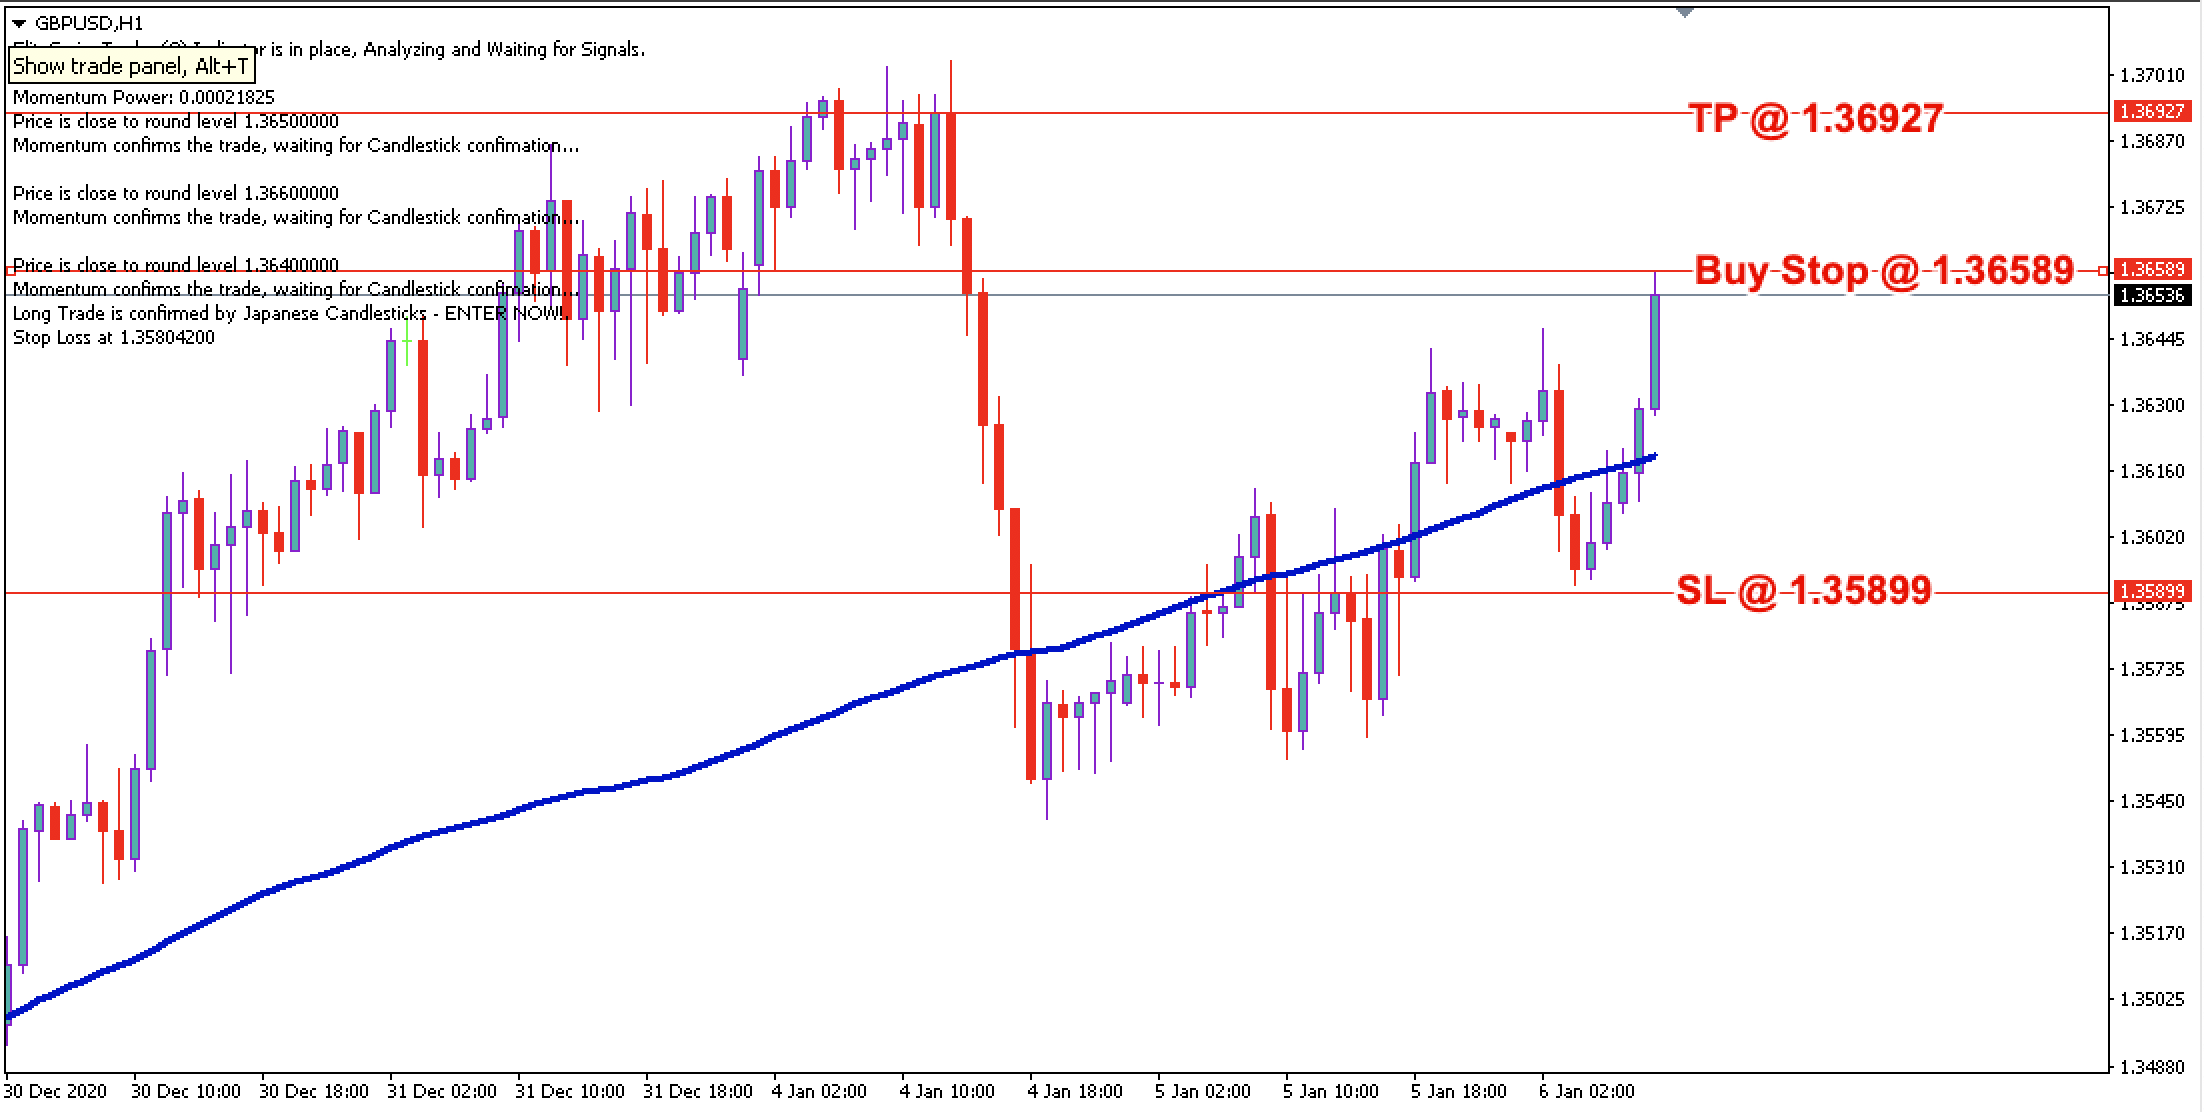 GBP/USD Daily Price Forecast - 6th Jan 2021